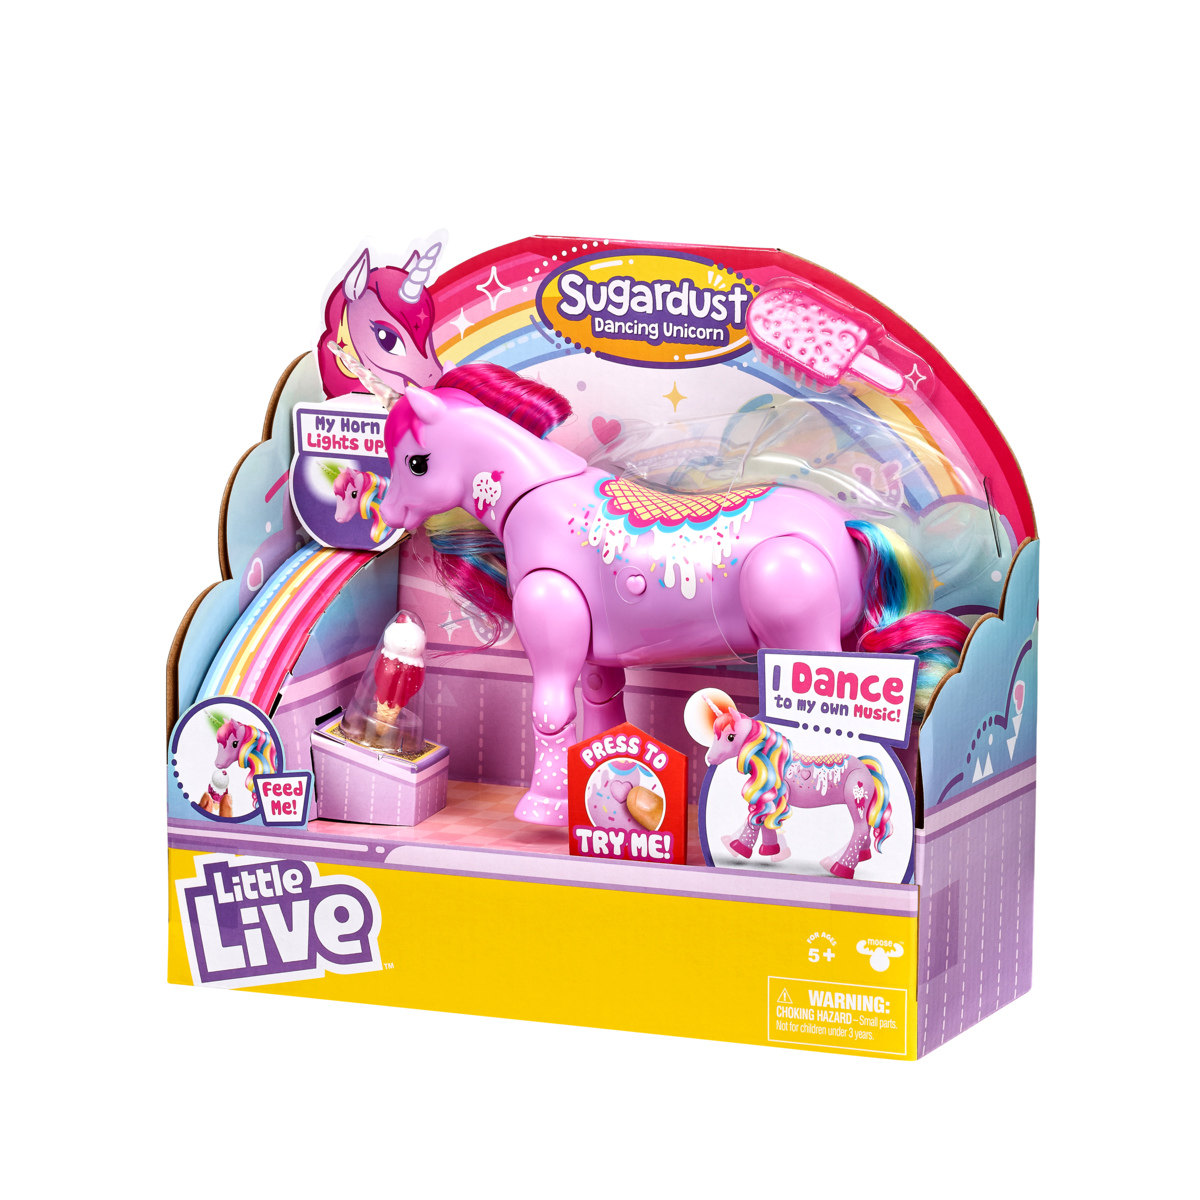 Cupcake Boxes Kmart Little Live Pets Sparkles My Dancing Unicorn Assorted